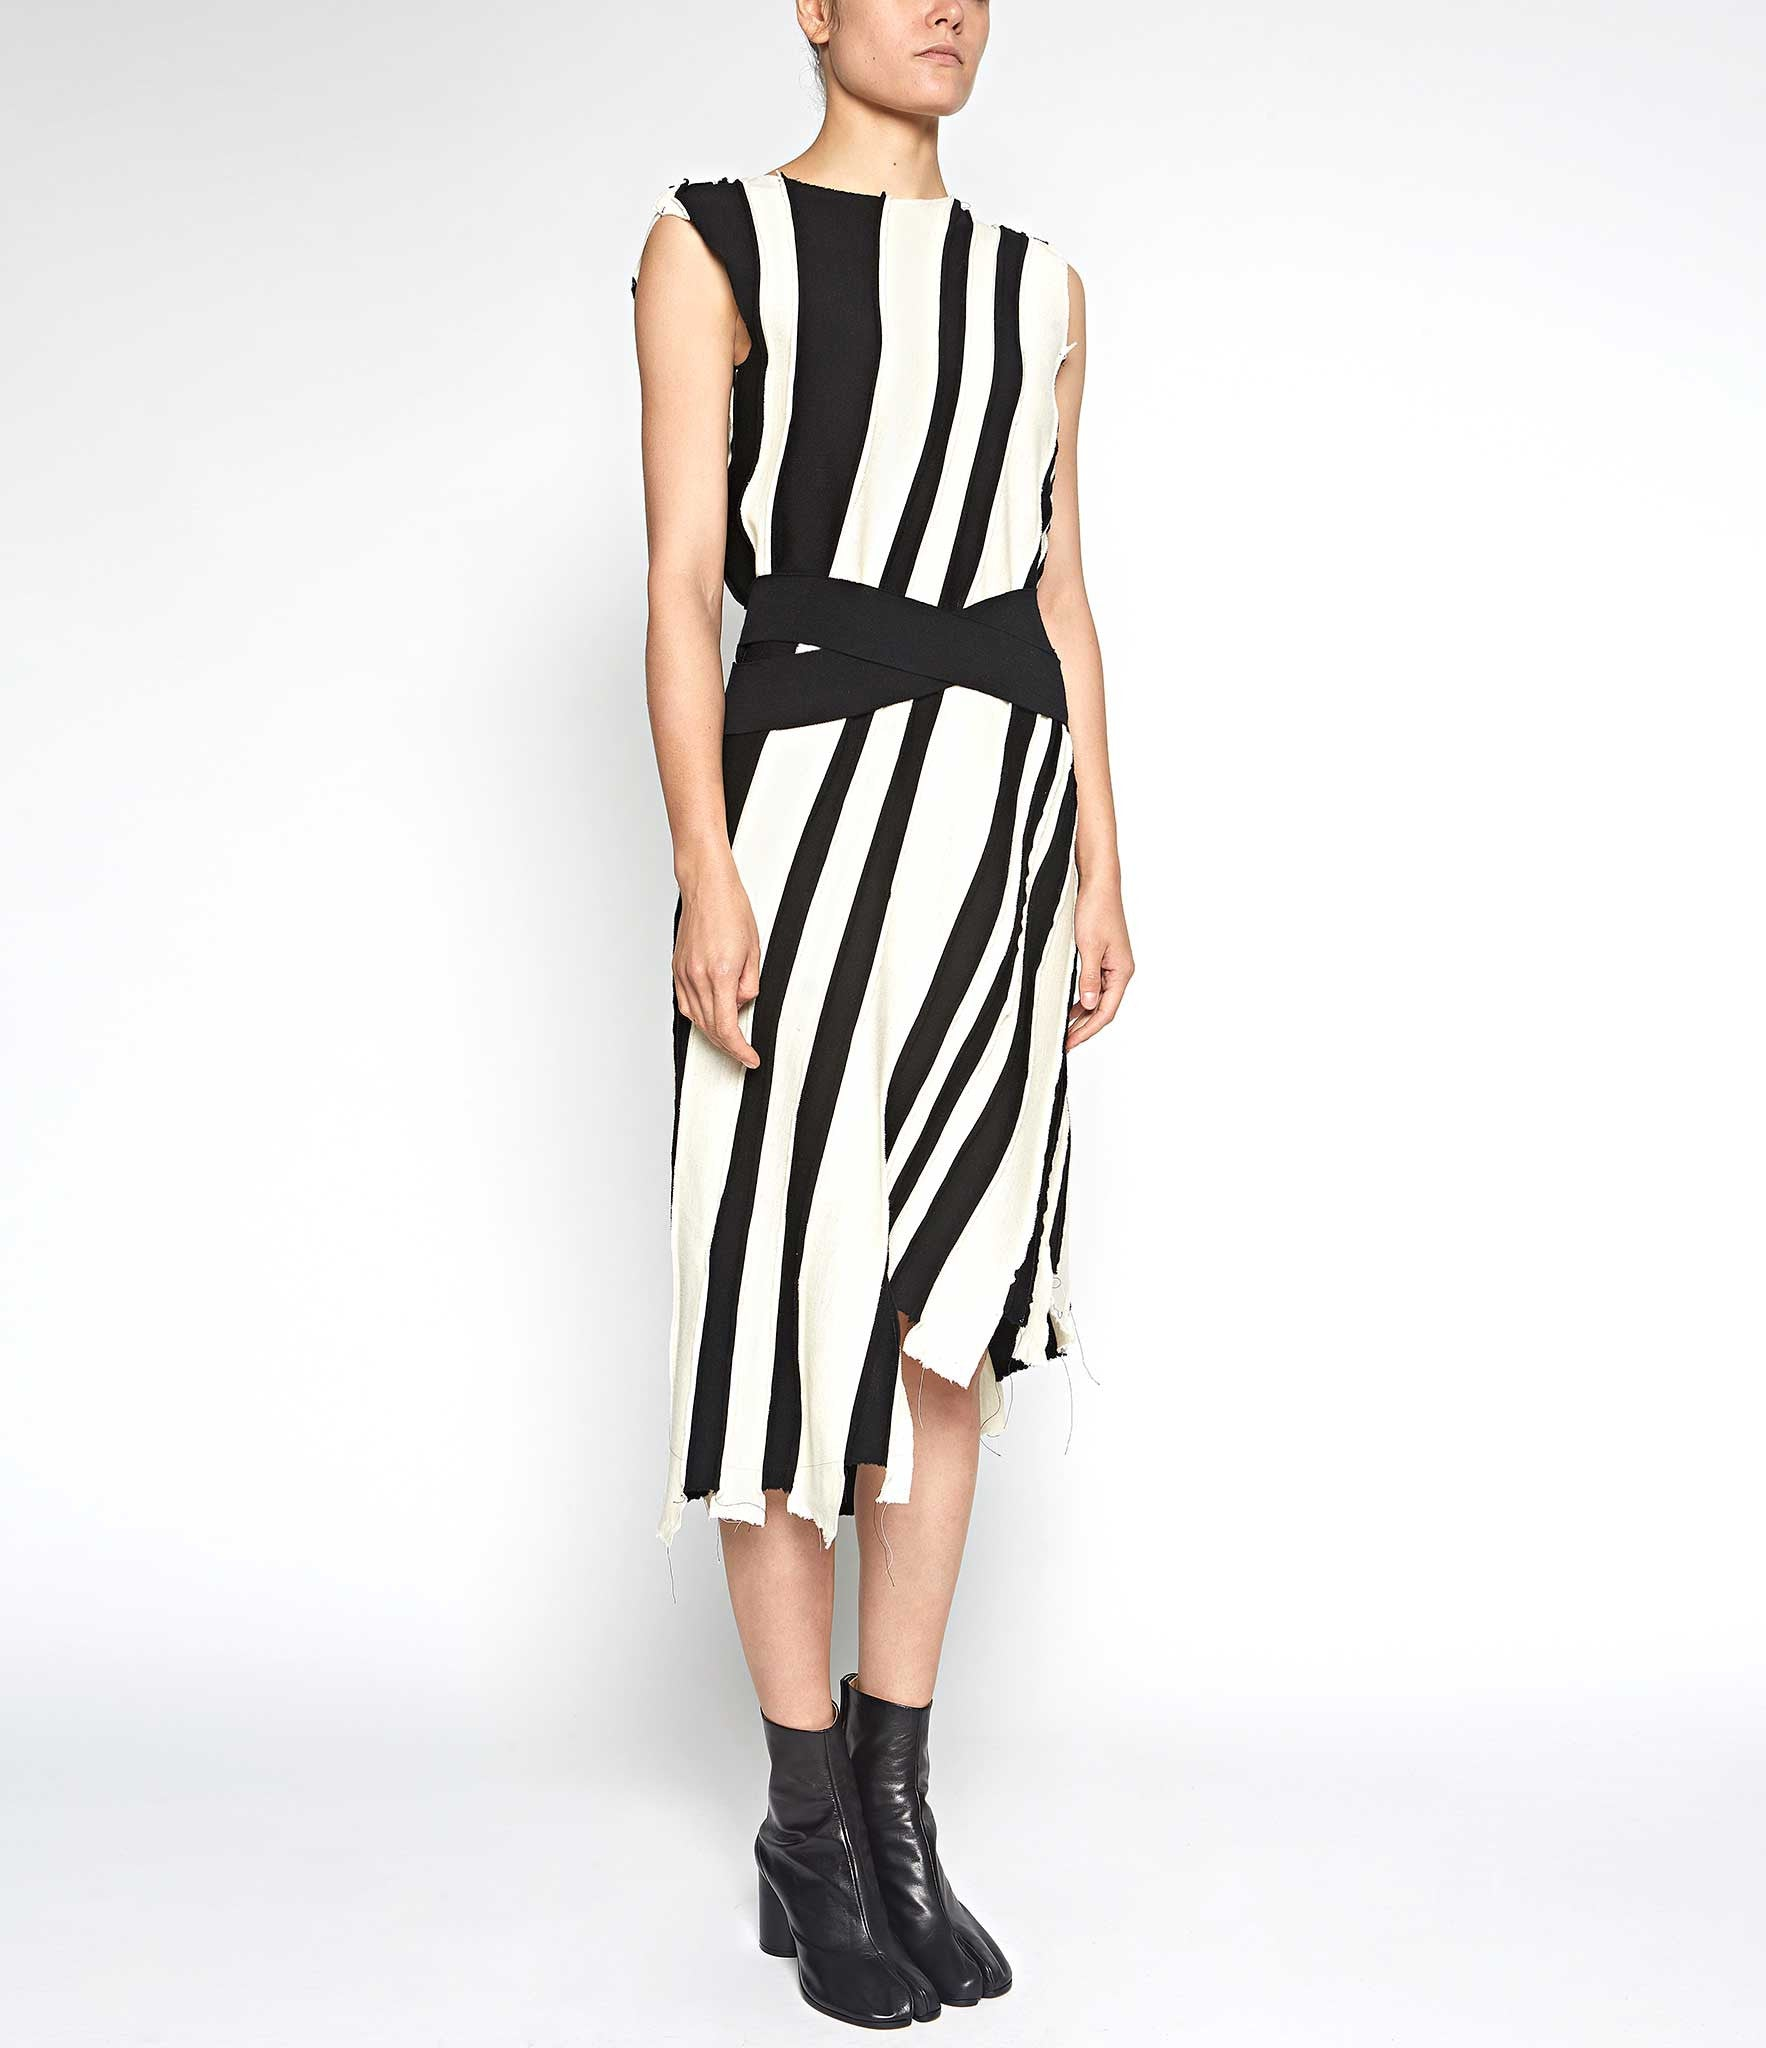 Maria Turri Ribboned Dress